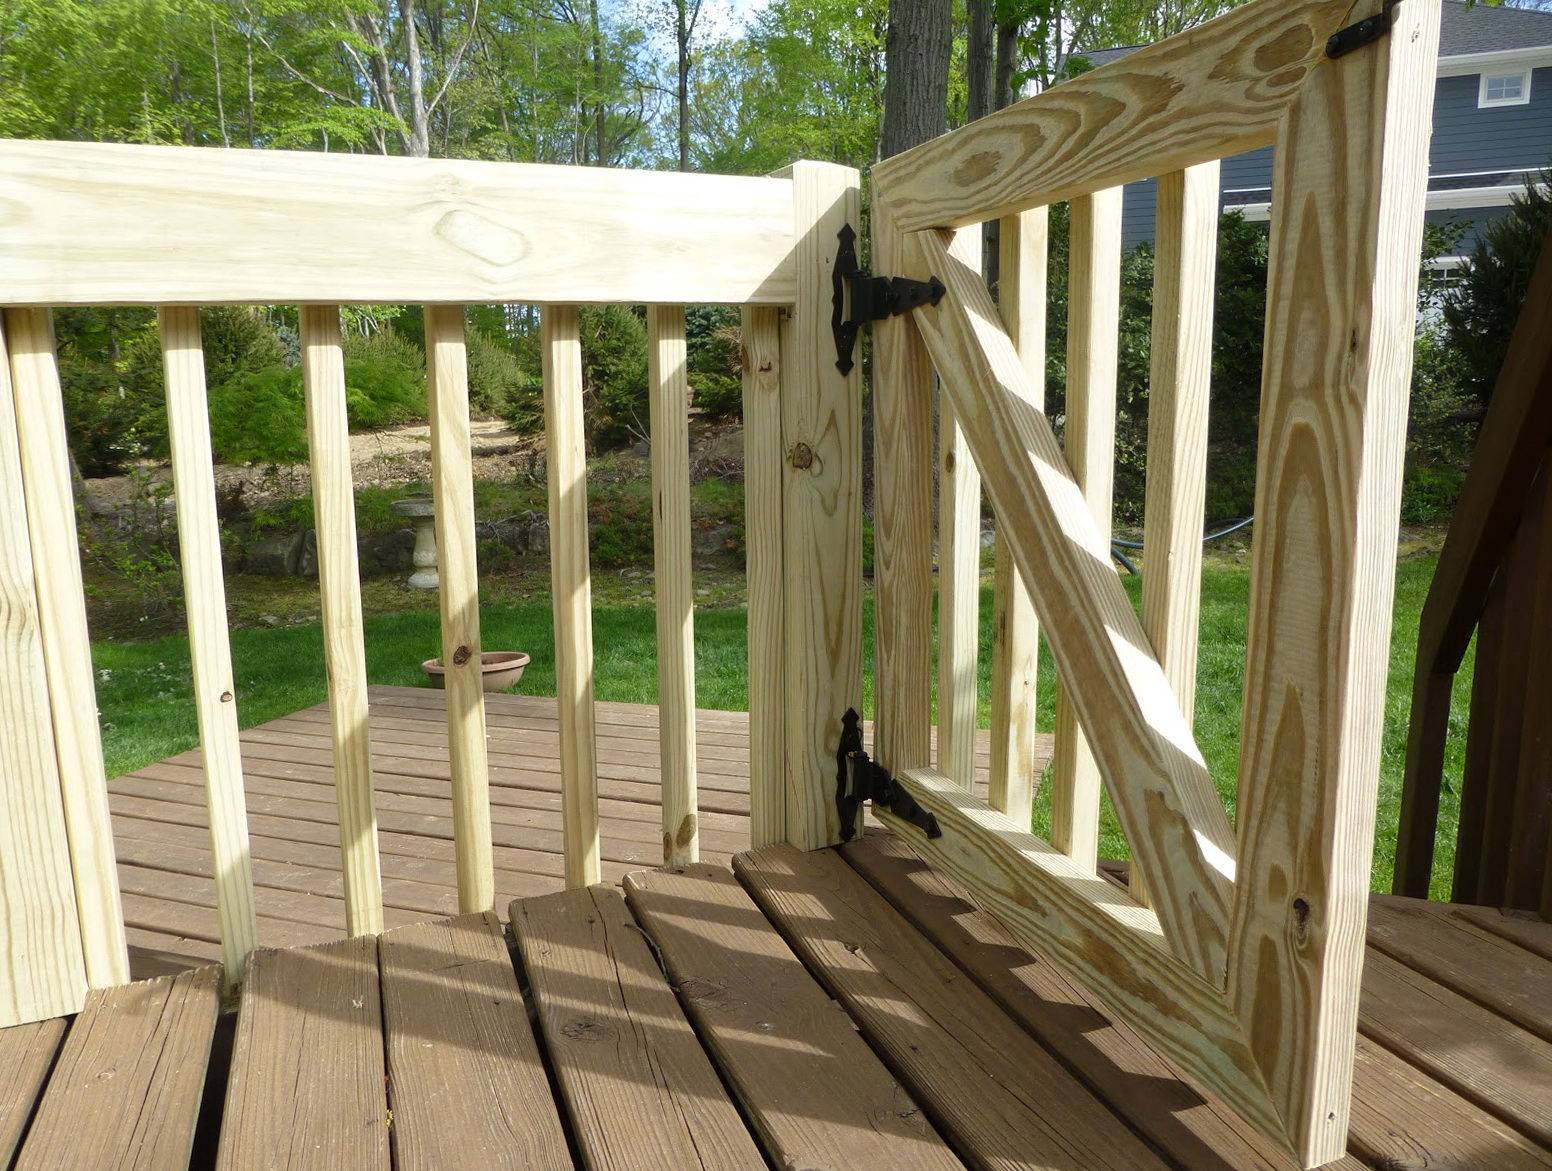 Baby Gate For Outdoor Deck Home Design Ideas